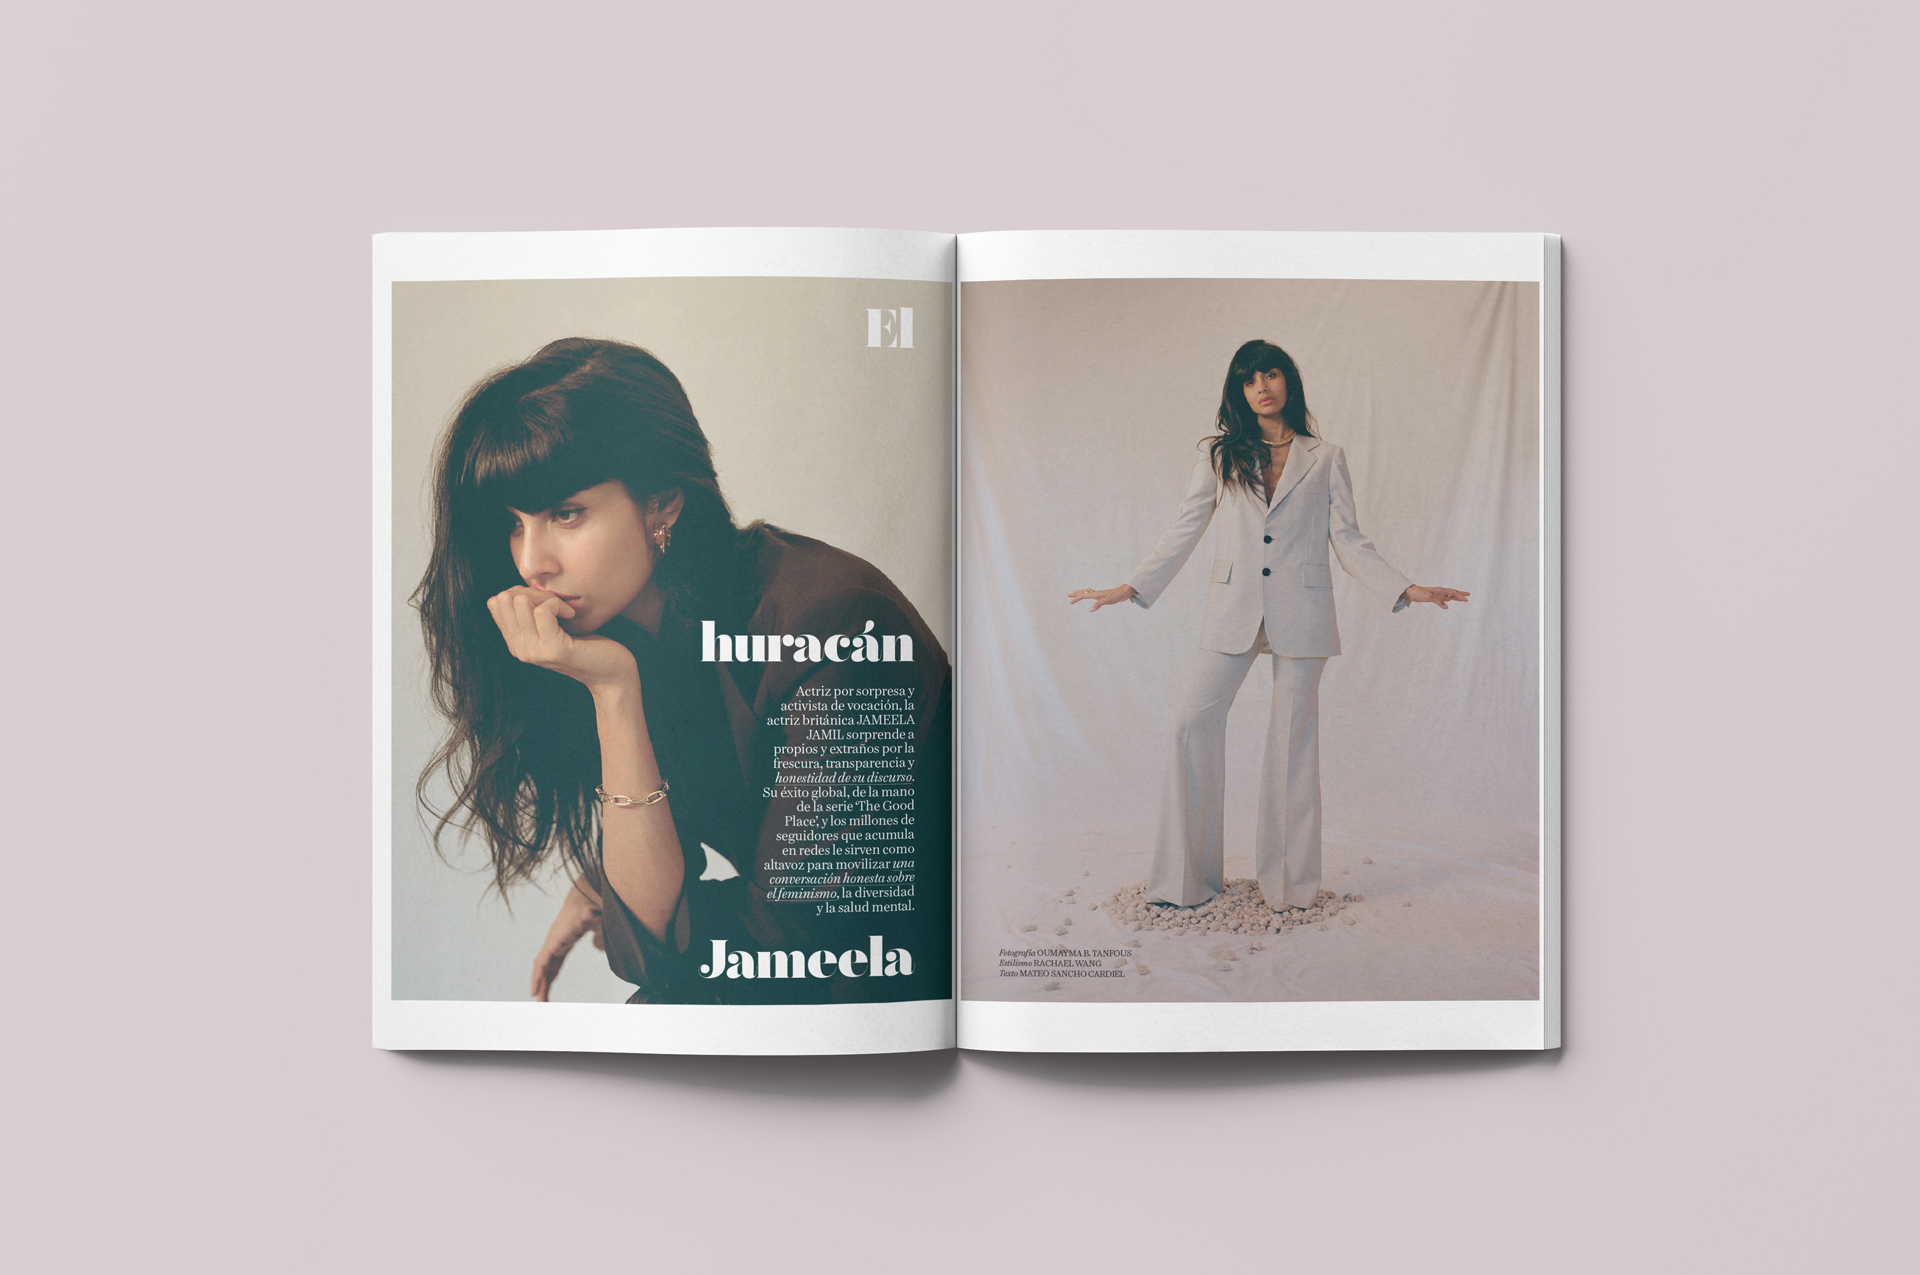 mockup layout of Vogue Spain issue featuring actress Jameela Jamil by Lisa Doré